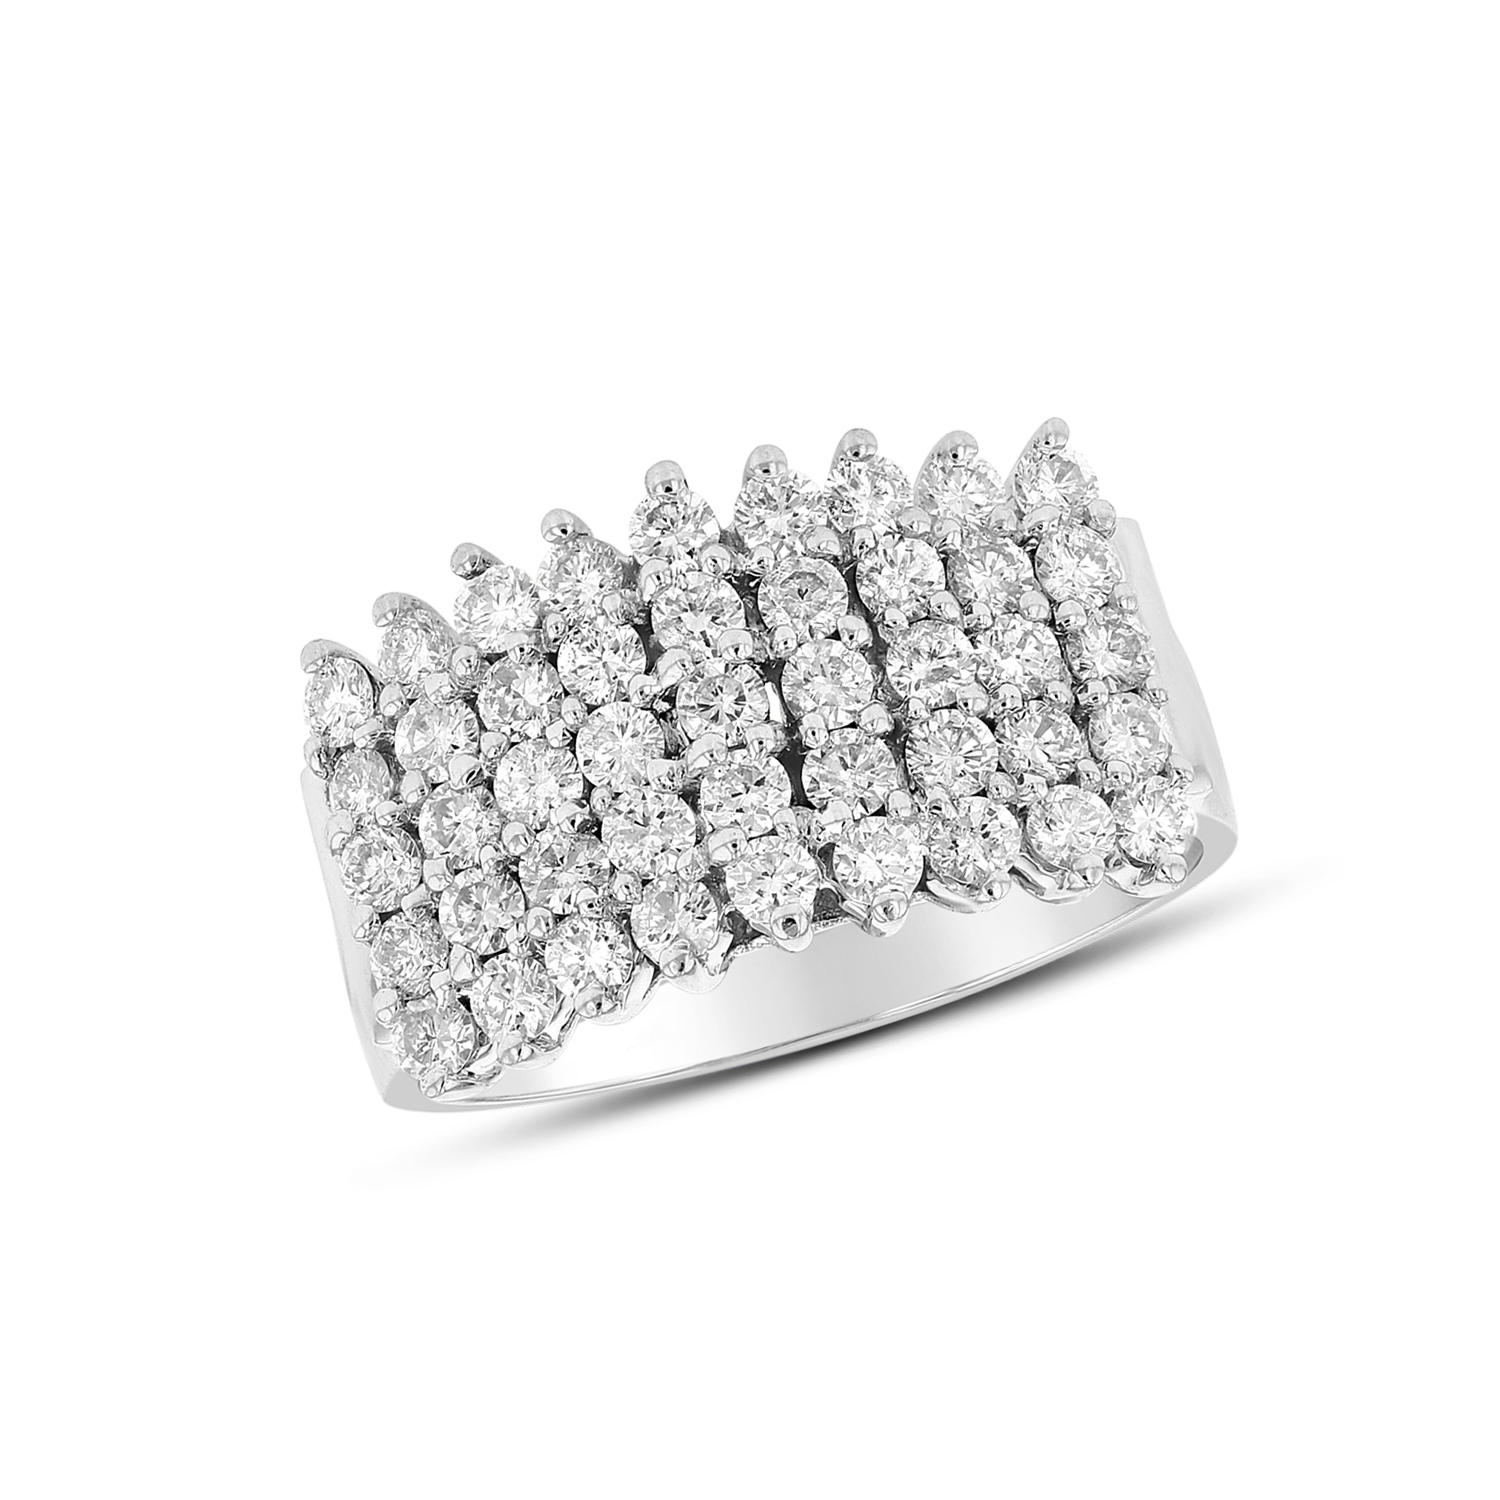 View 1.25ctw Diamond Band in 14k White Gold